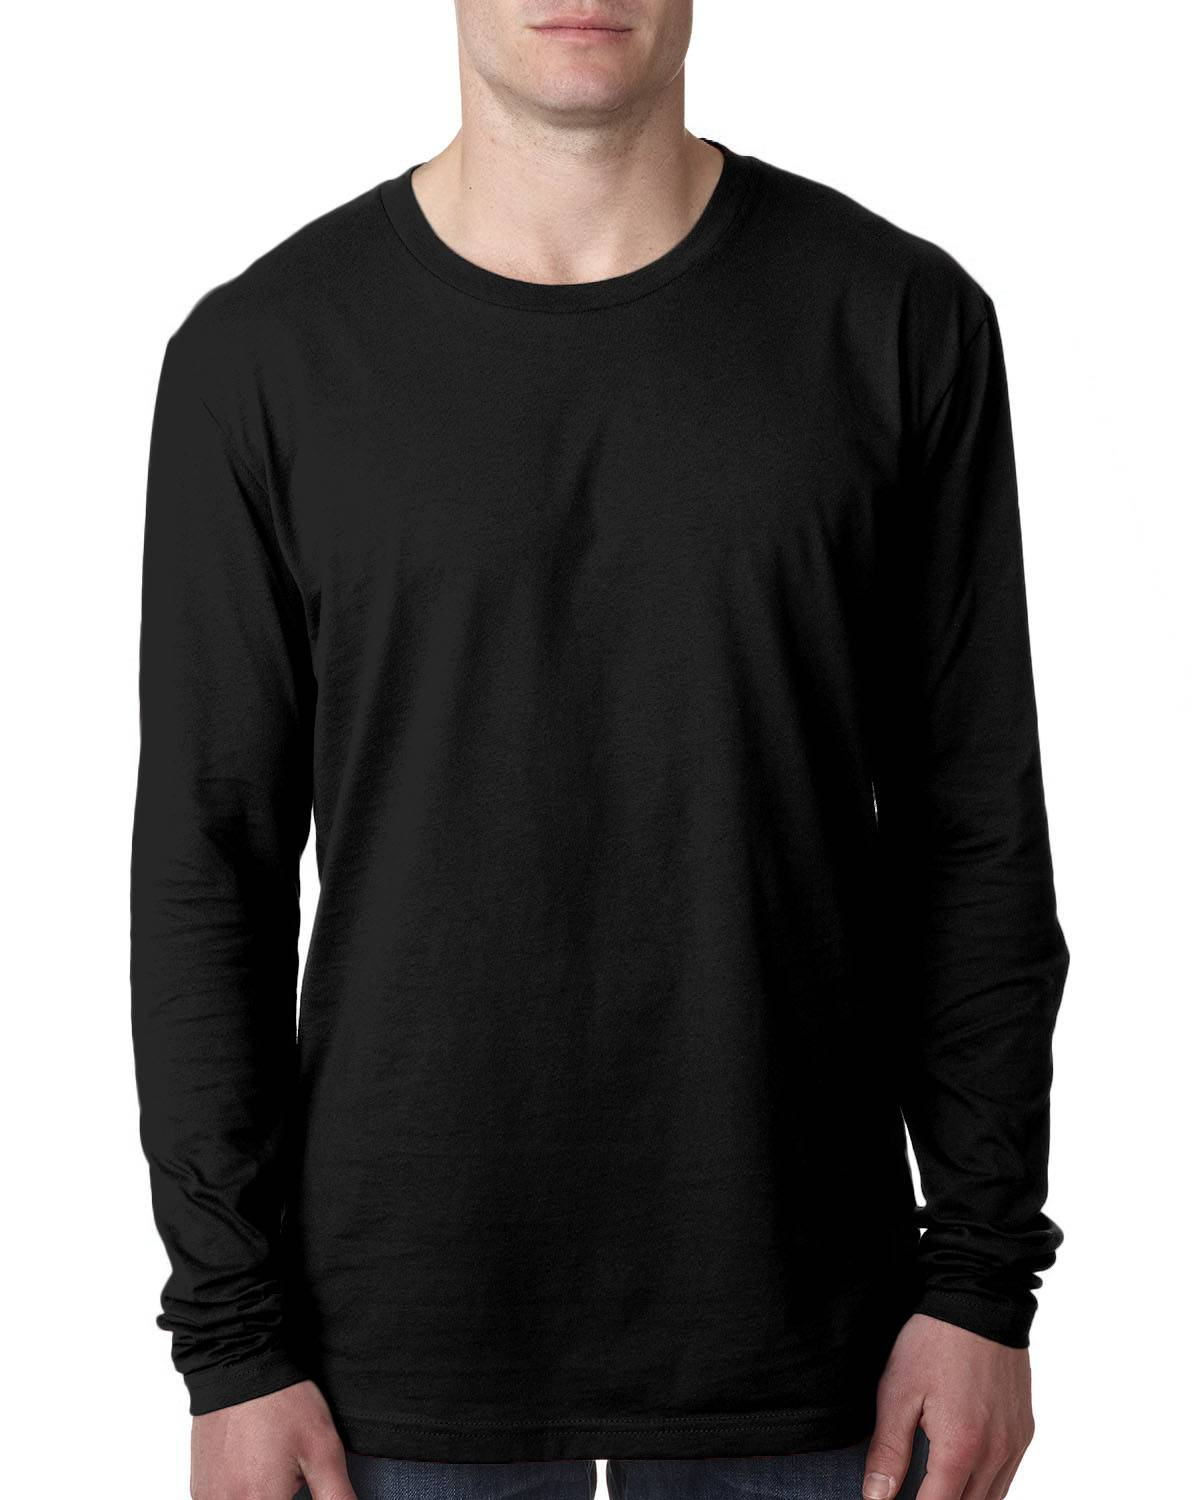 Next Level Men's Cotton Long-Sleeve Crew | N3601